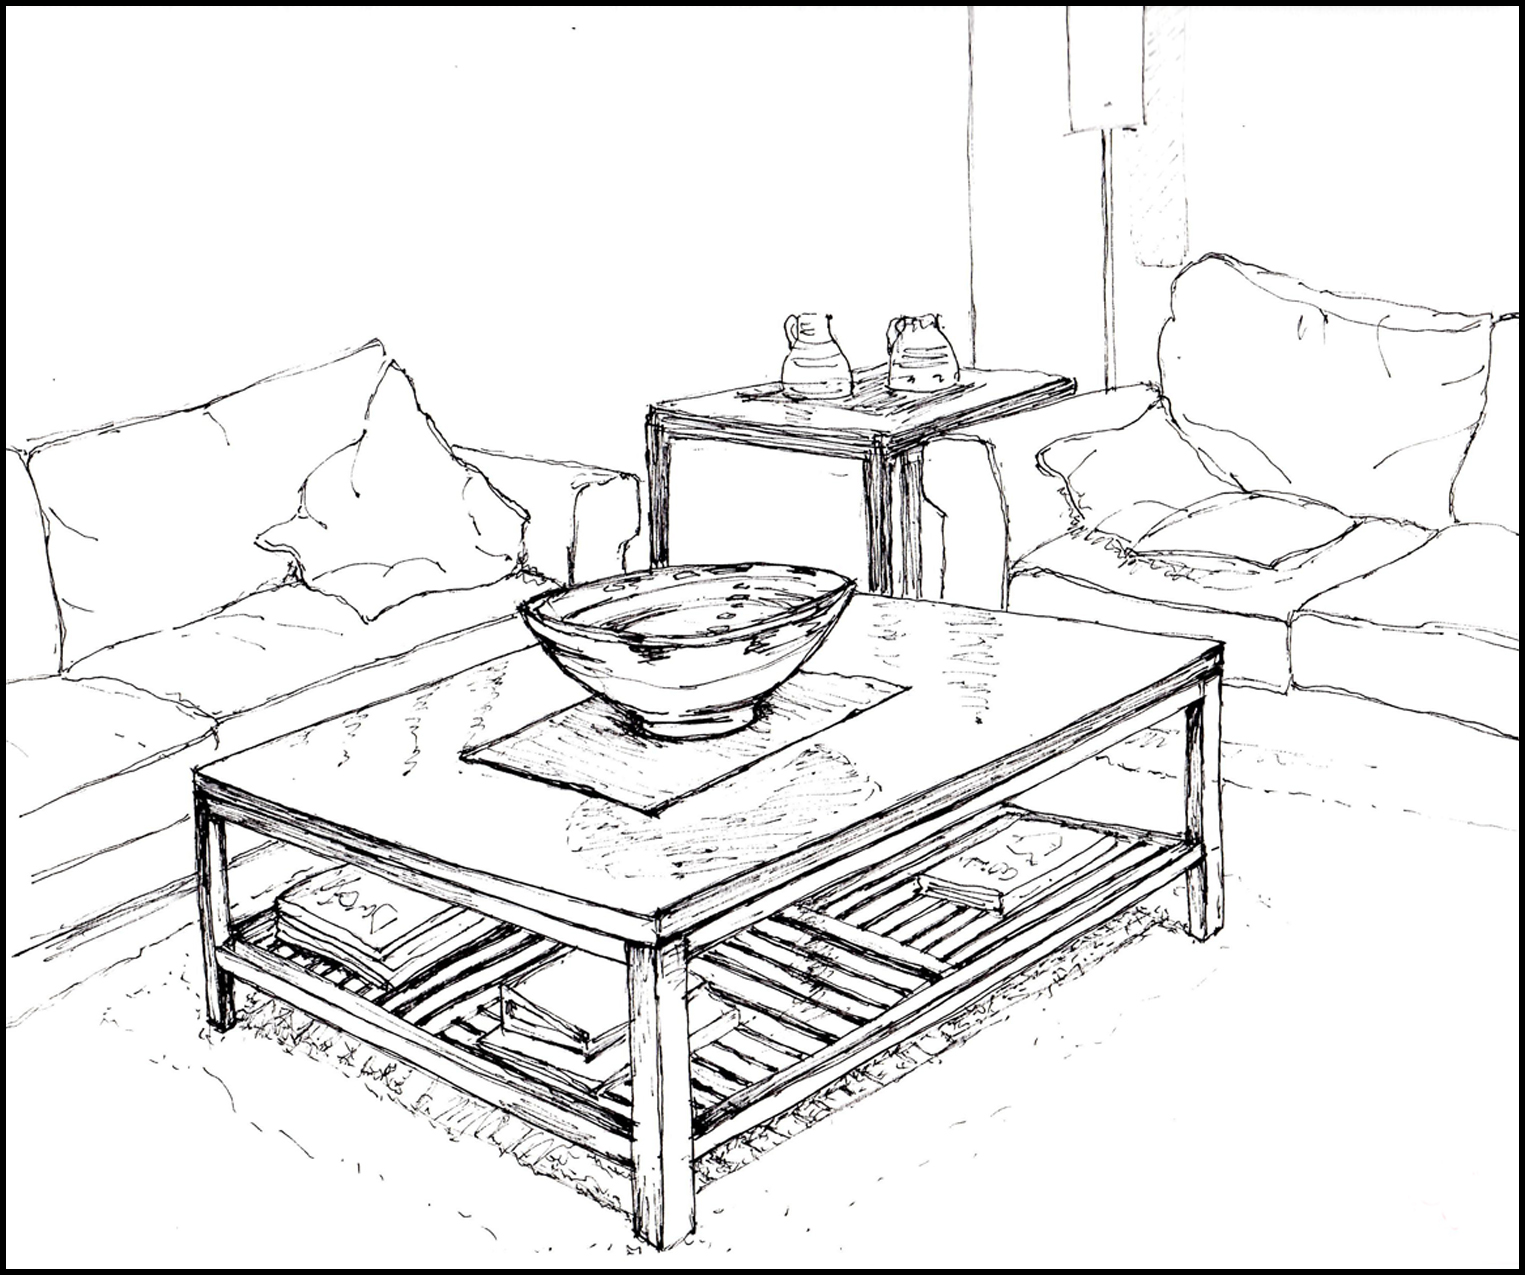 1525x1275 Living Room Drawing Of Living Room Point Perspective Interior